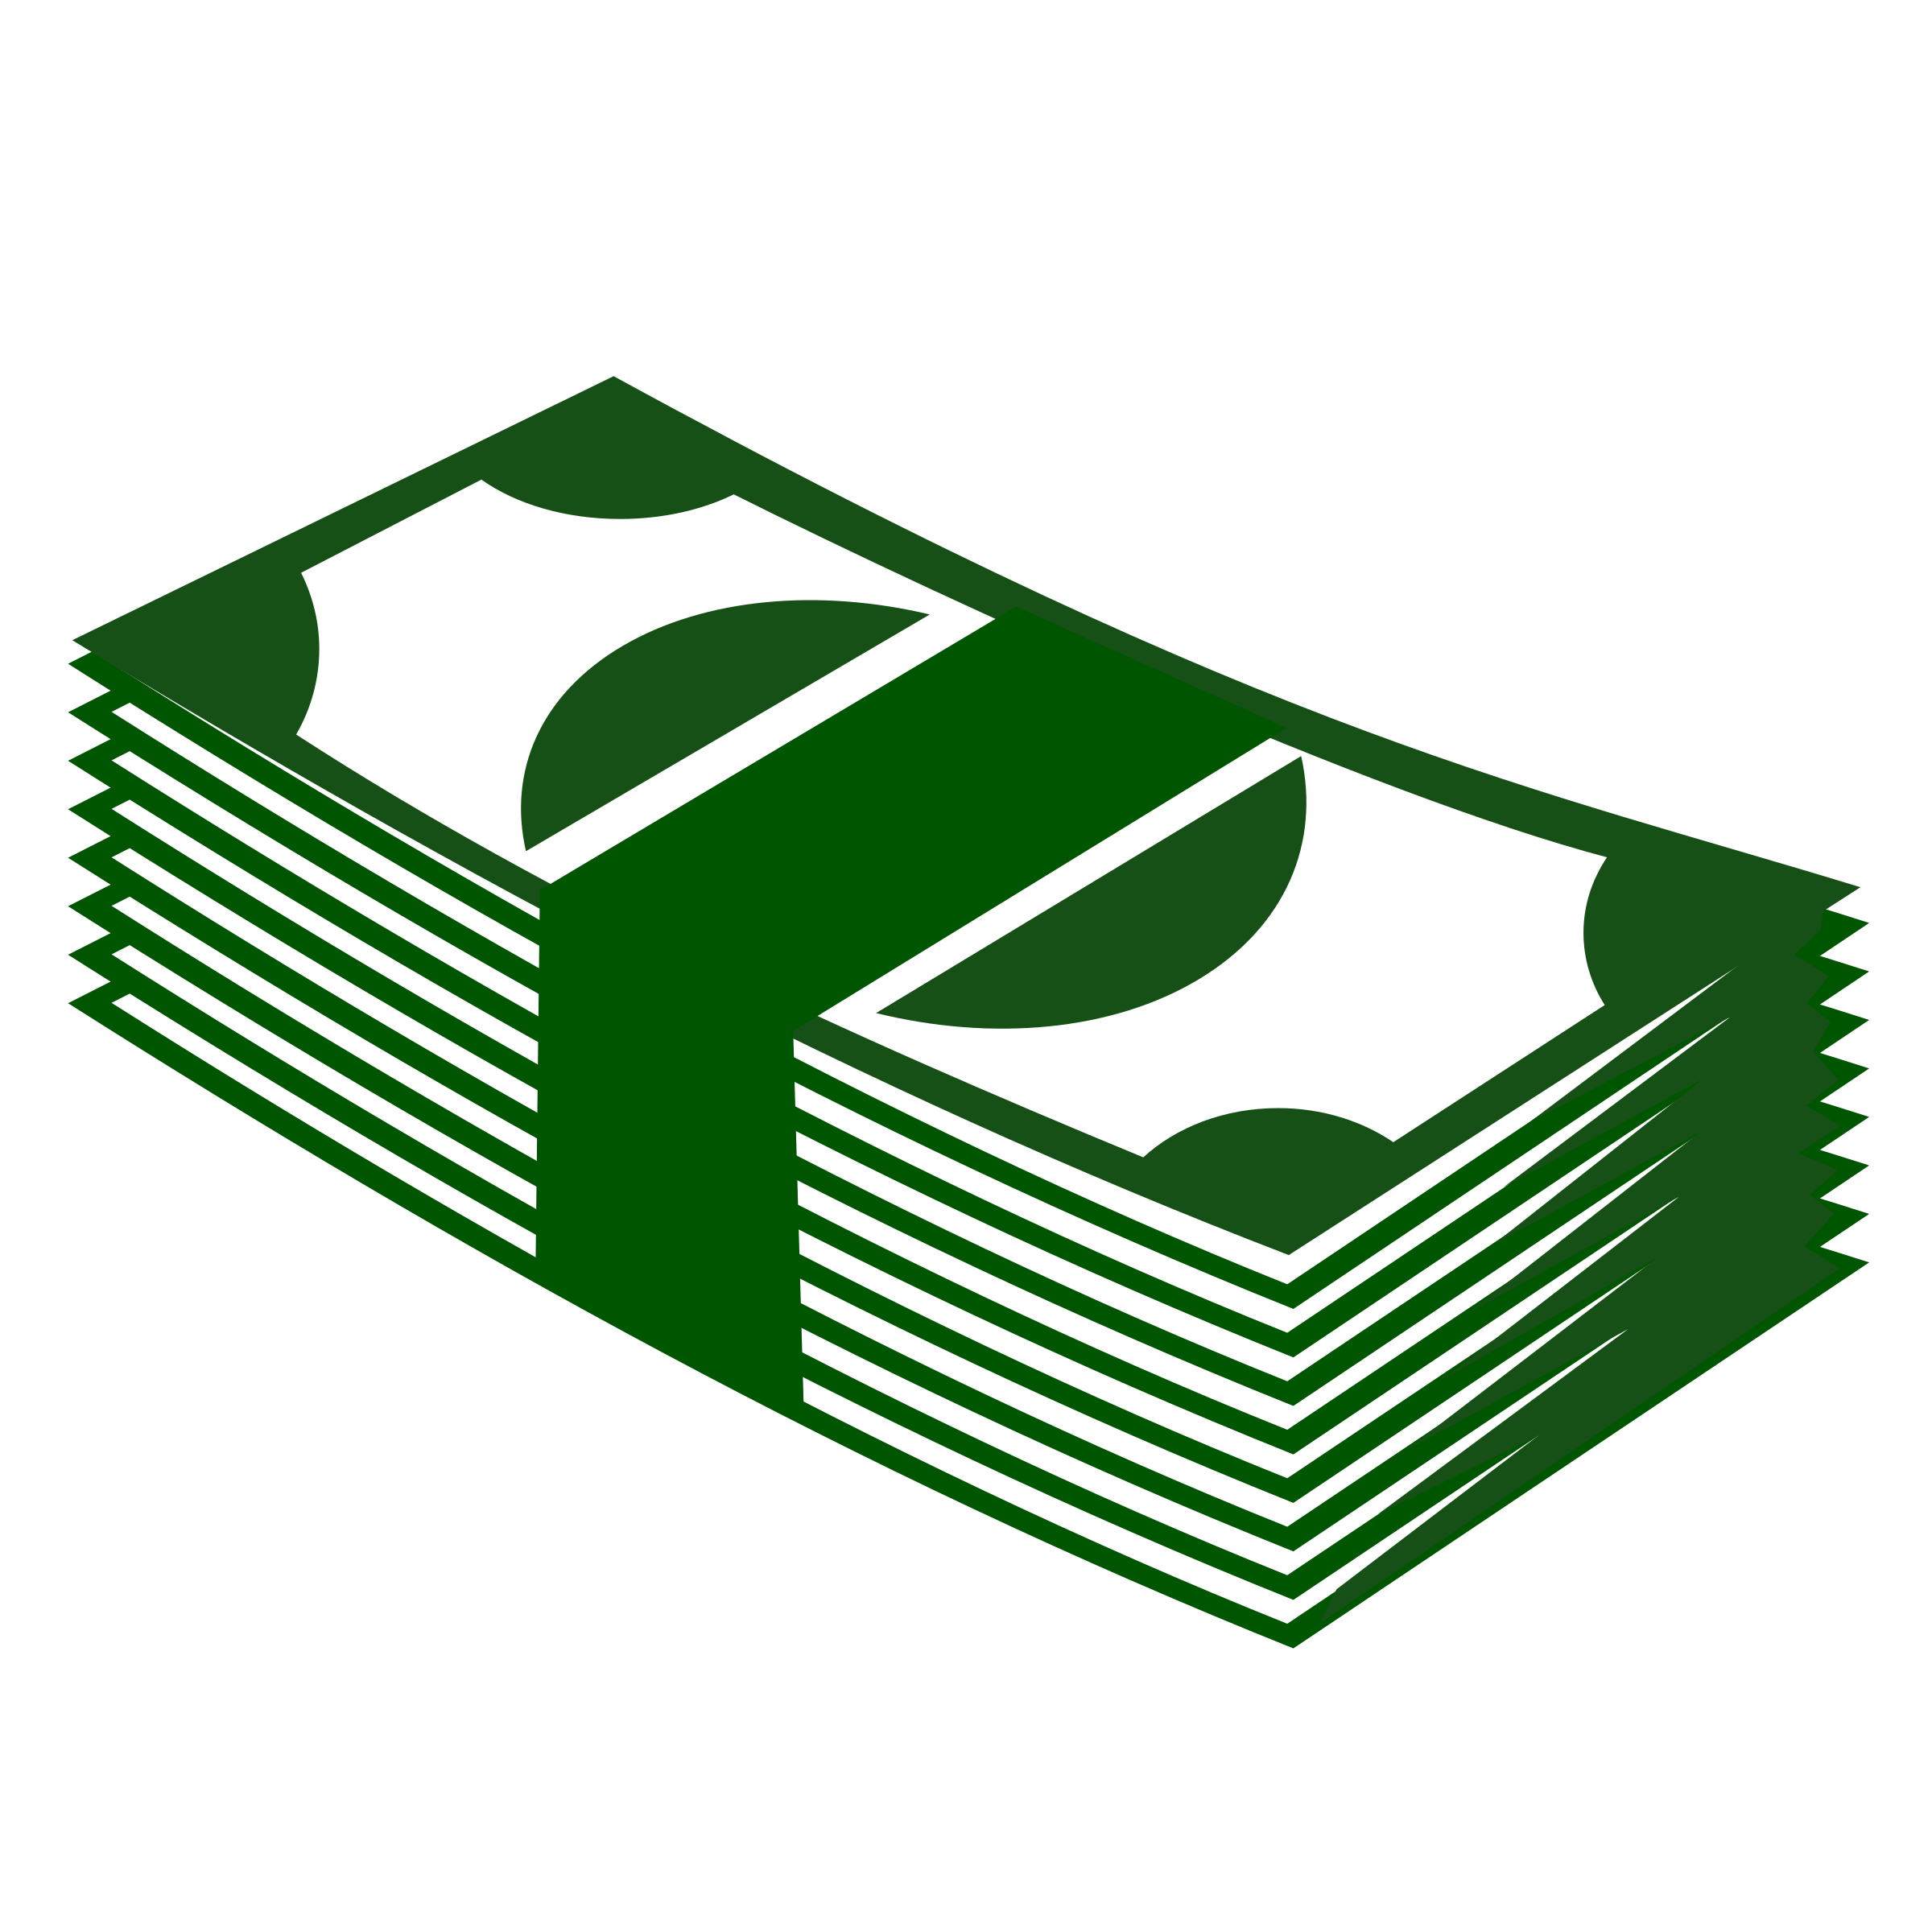 Money clip art png. Collection of cash